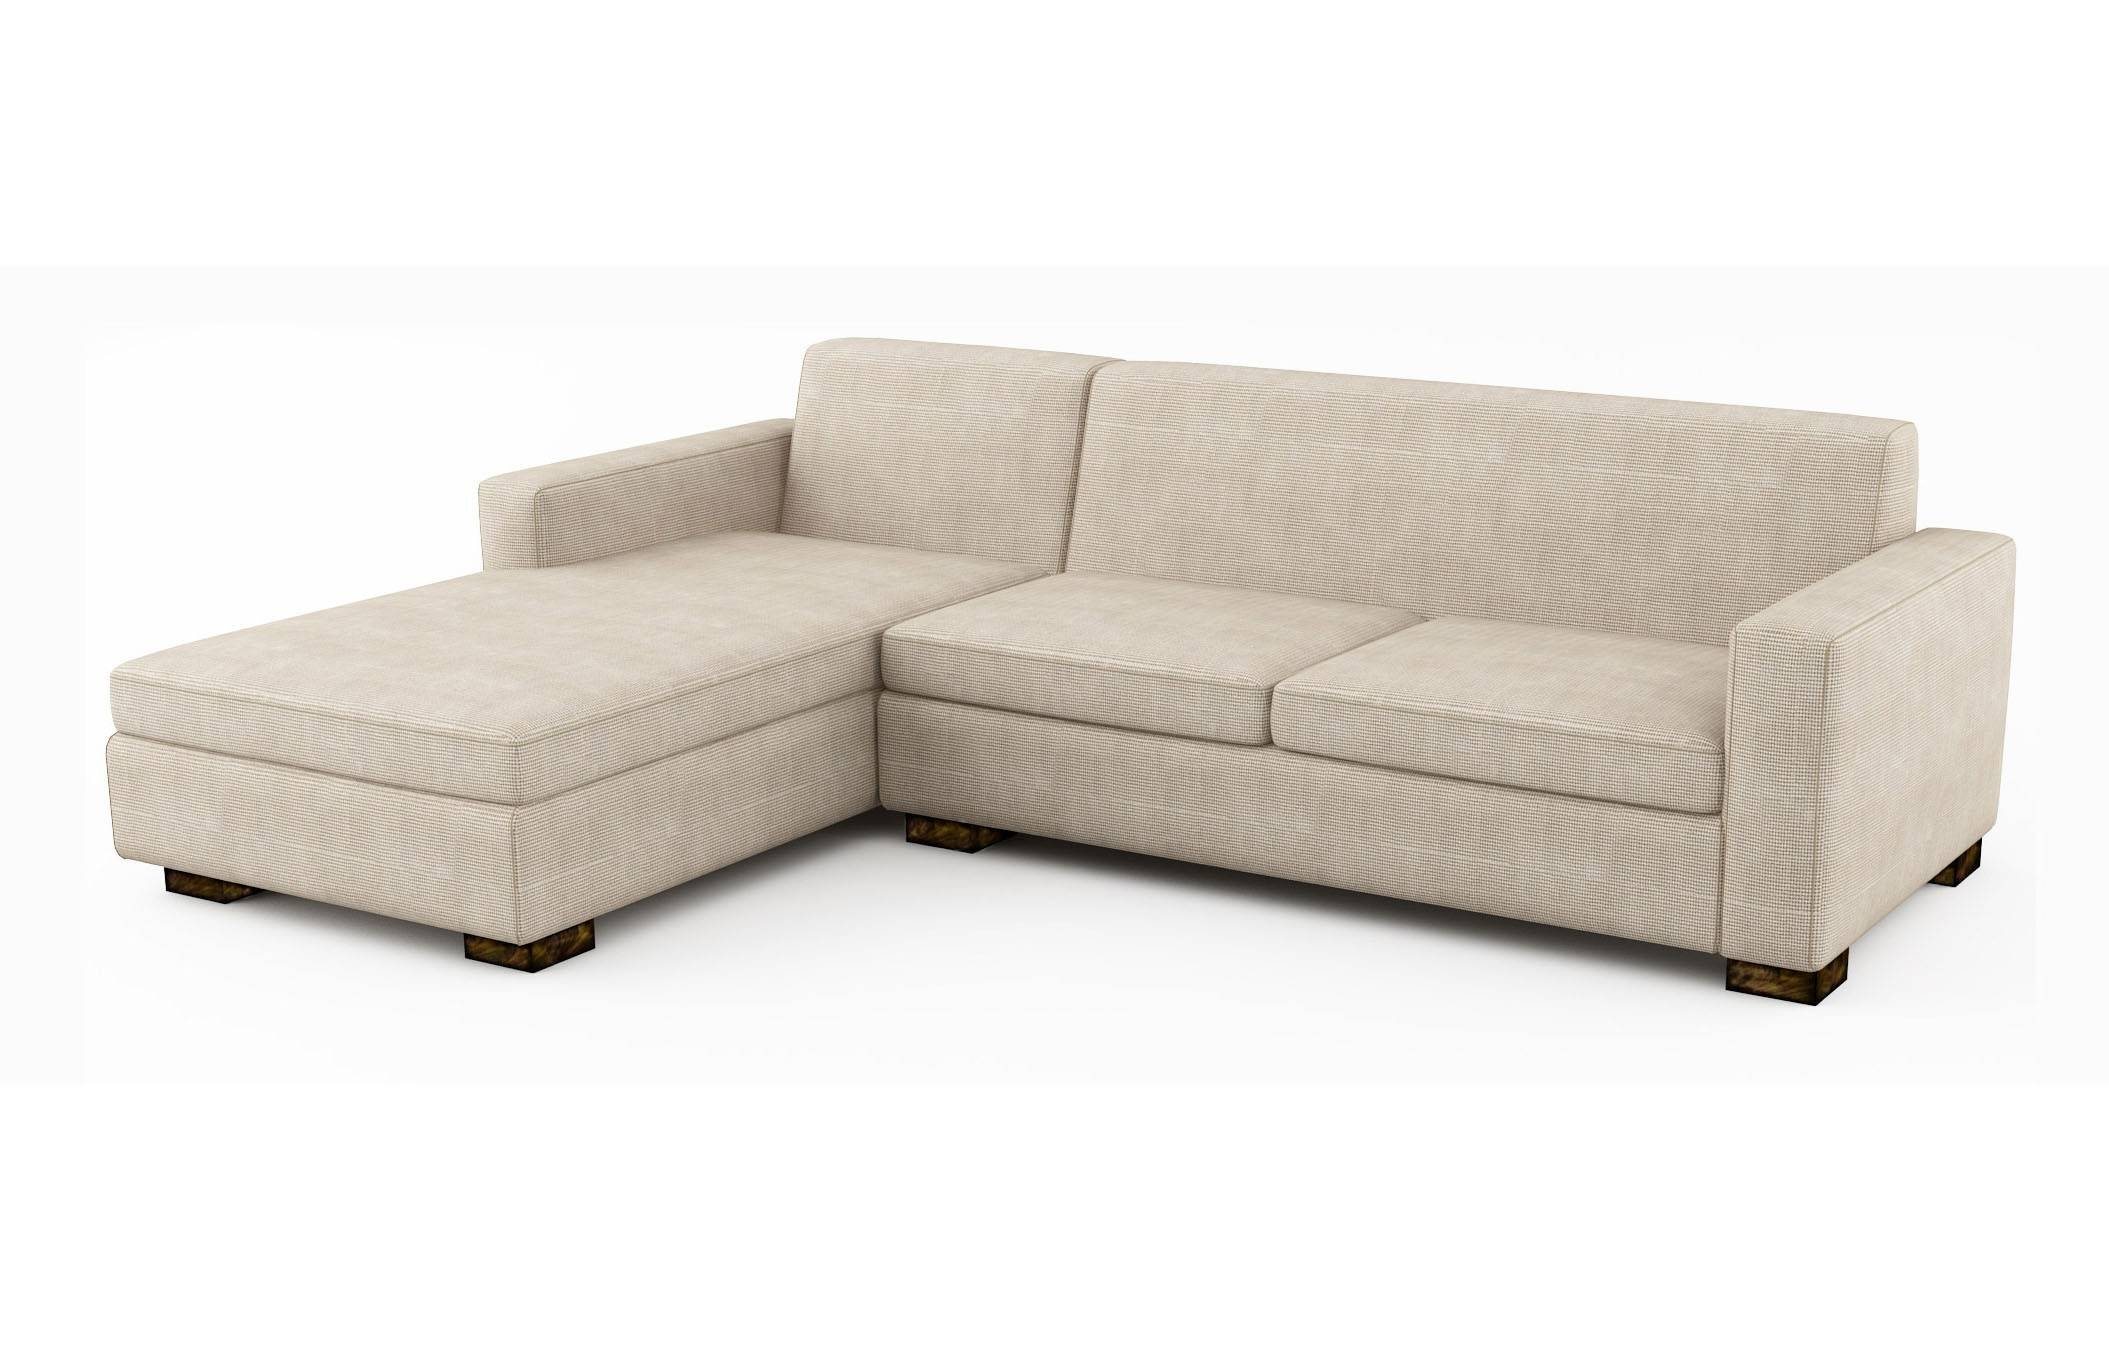 Brenem Chaise Sectional With Sofa Bed | Viesso throughout Cushion Sofa Beds (Image 3 of 30)